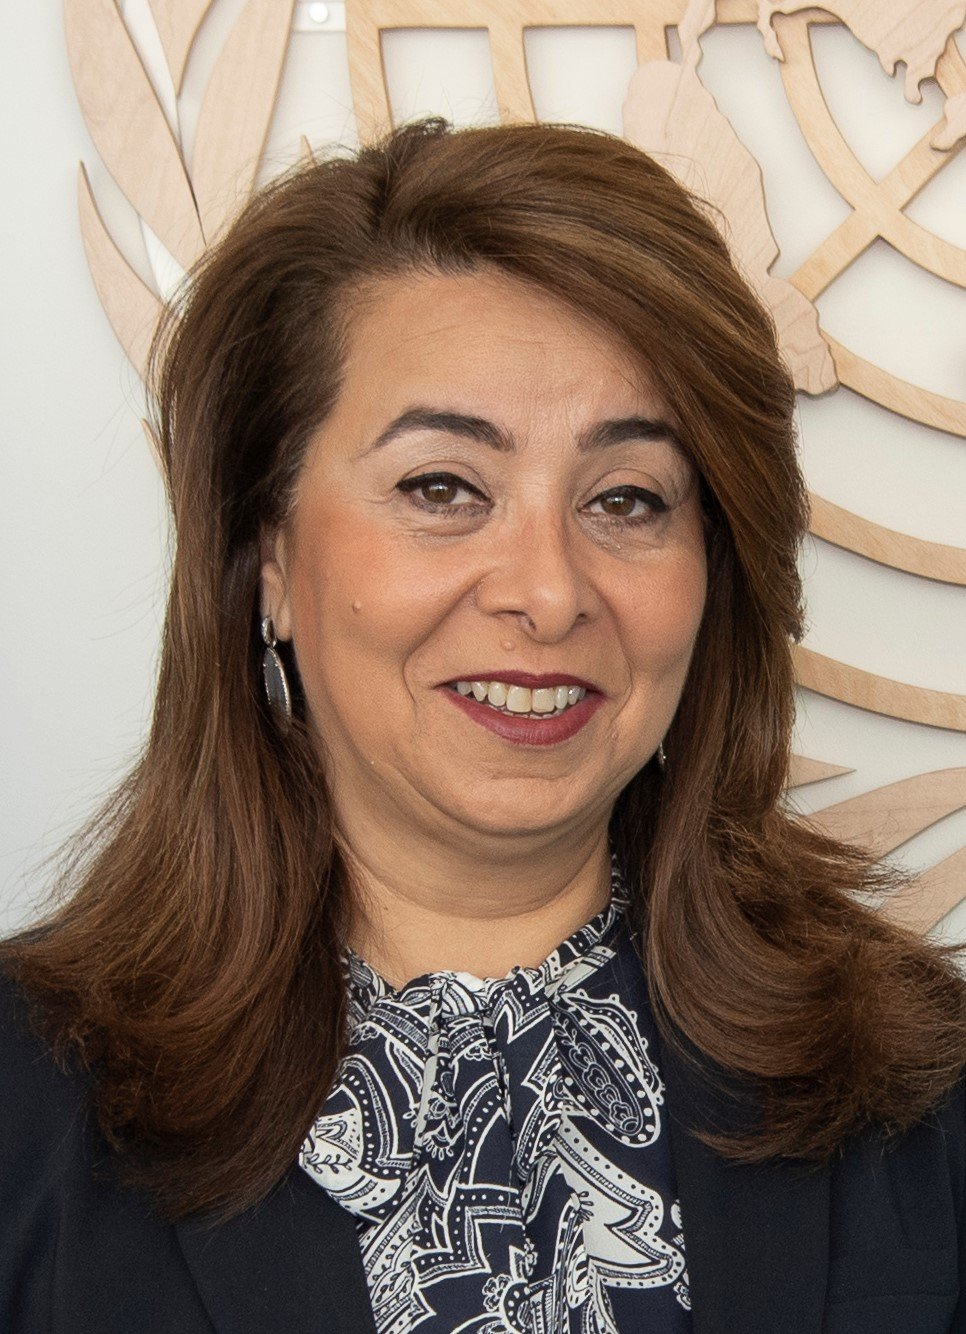 Ghada  Fathy Ismail Waly Executive Director of the United Nations Office on Drugs and Crime and Director-General of the United Nations Office at Vienna